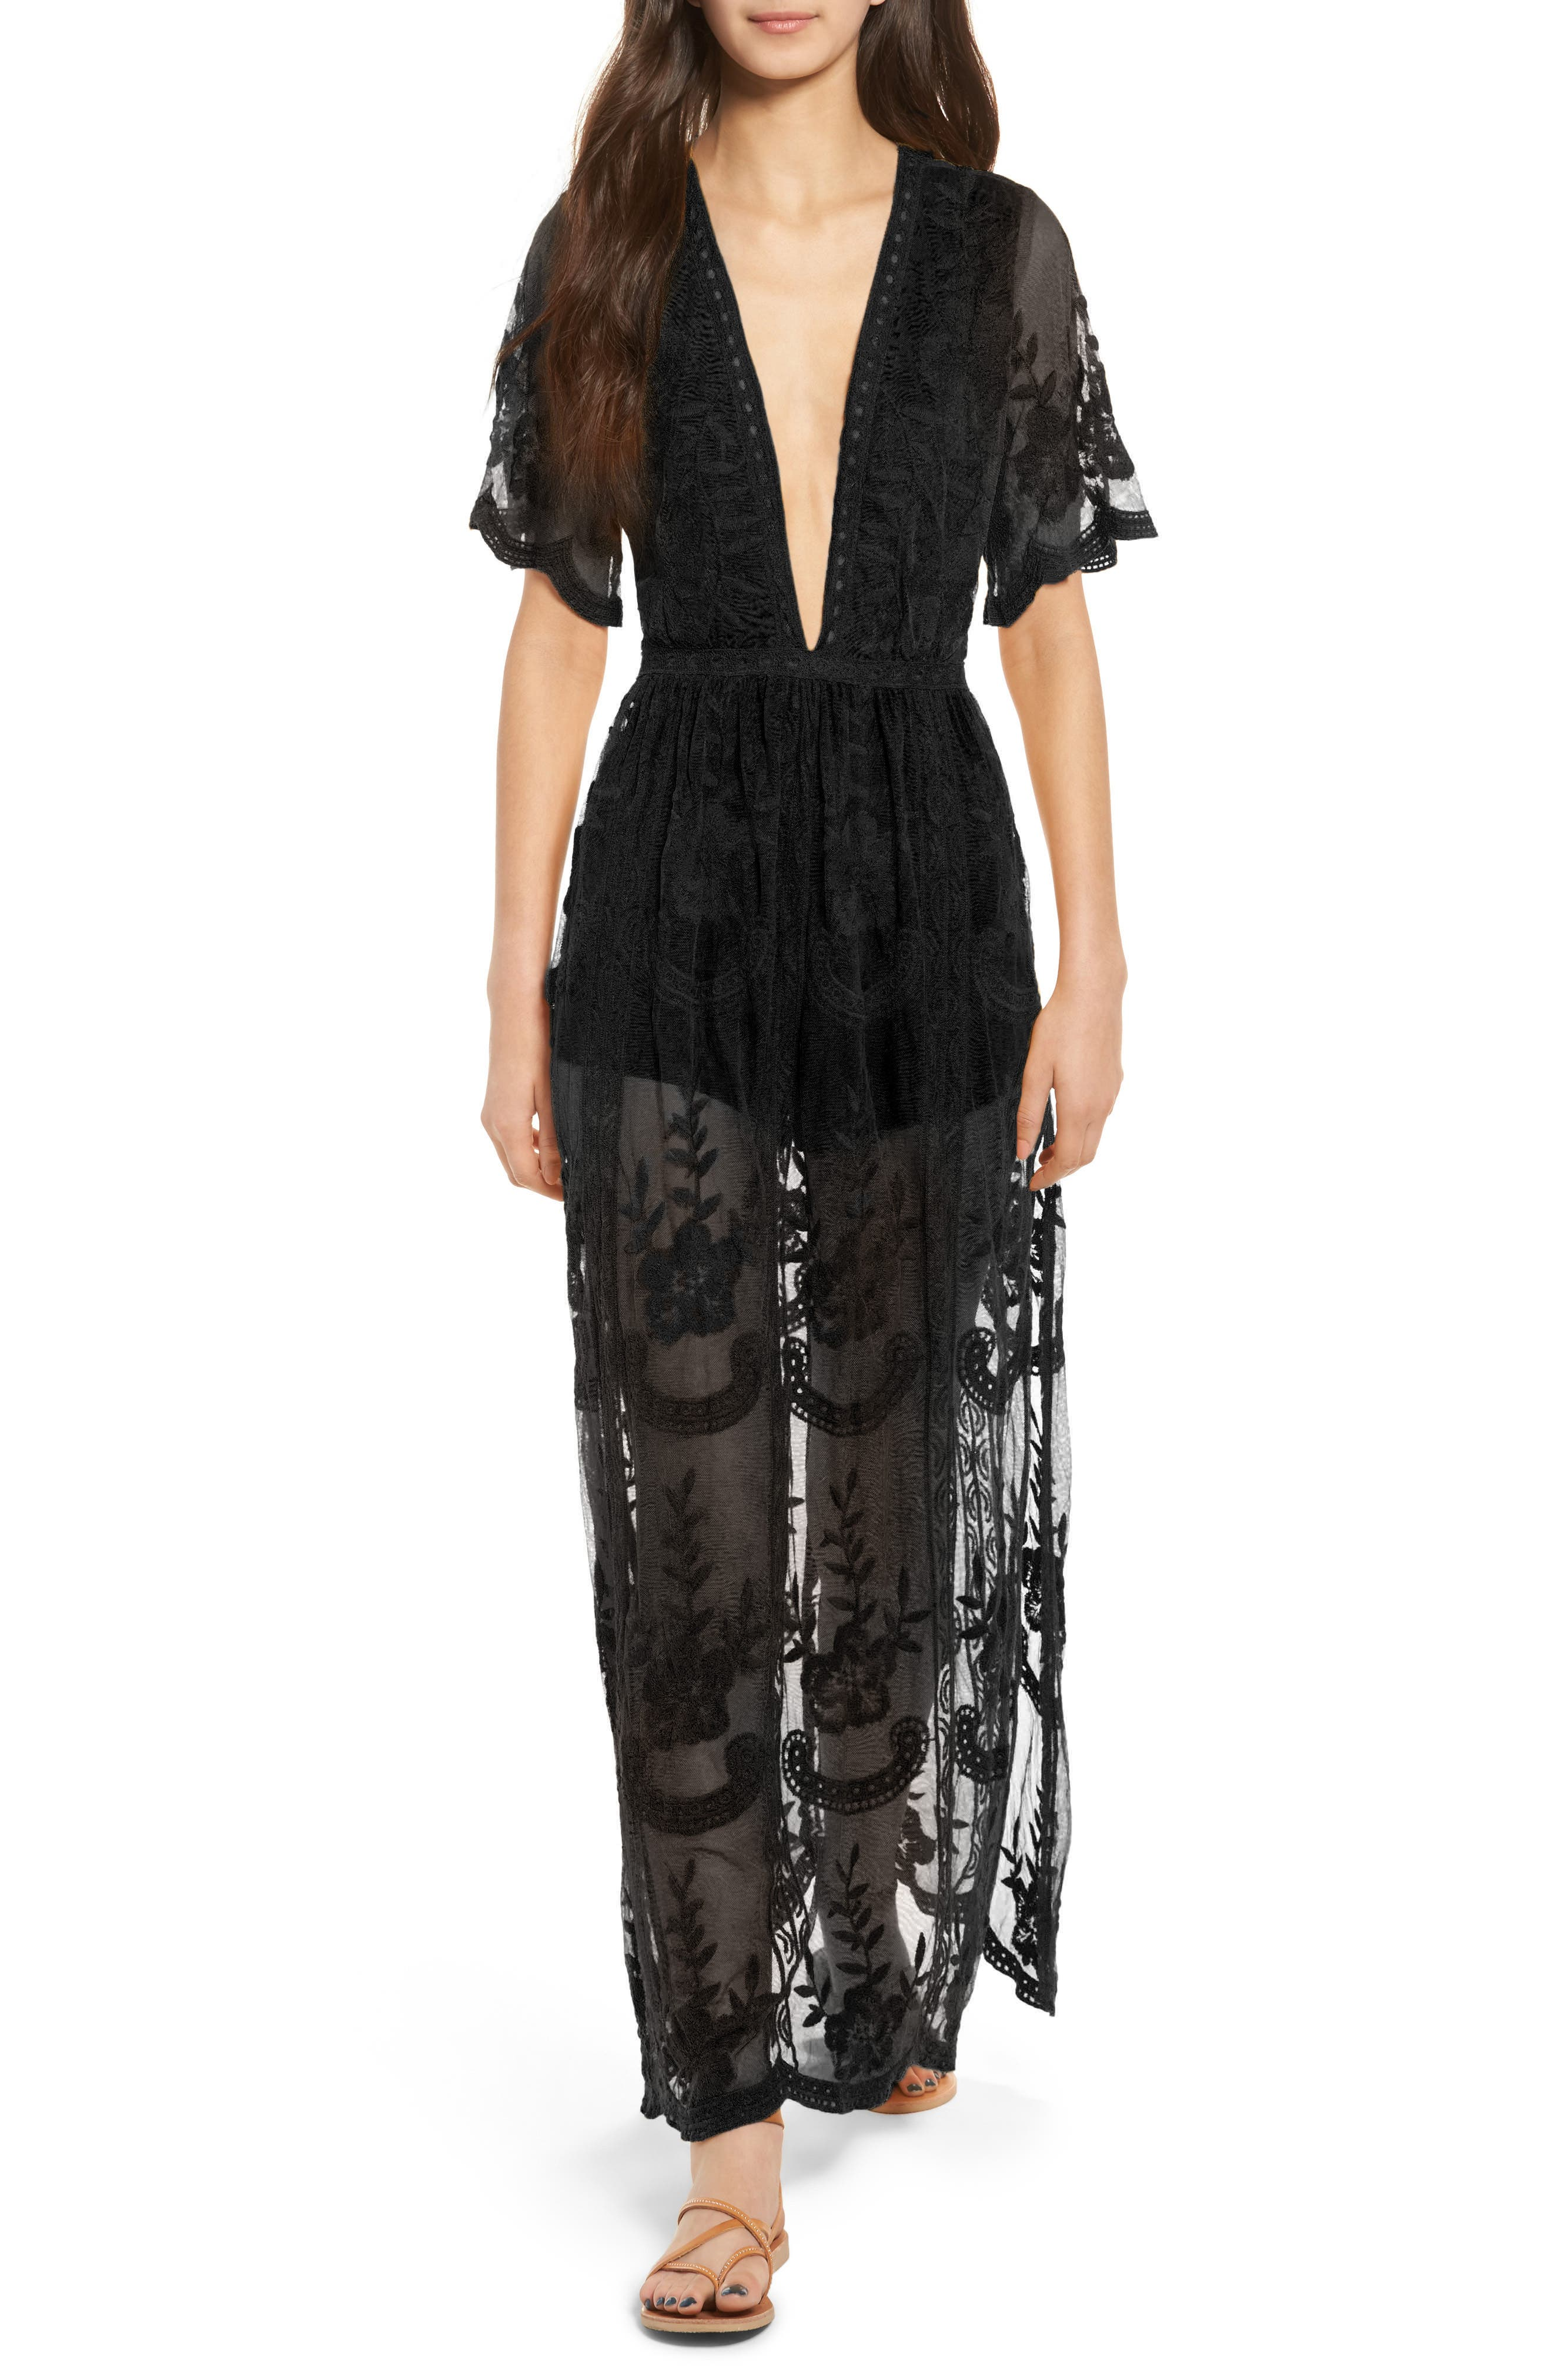 Socialite Lace Overlay Romper